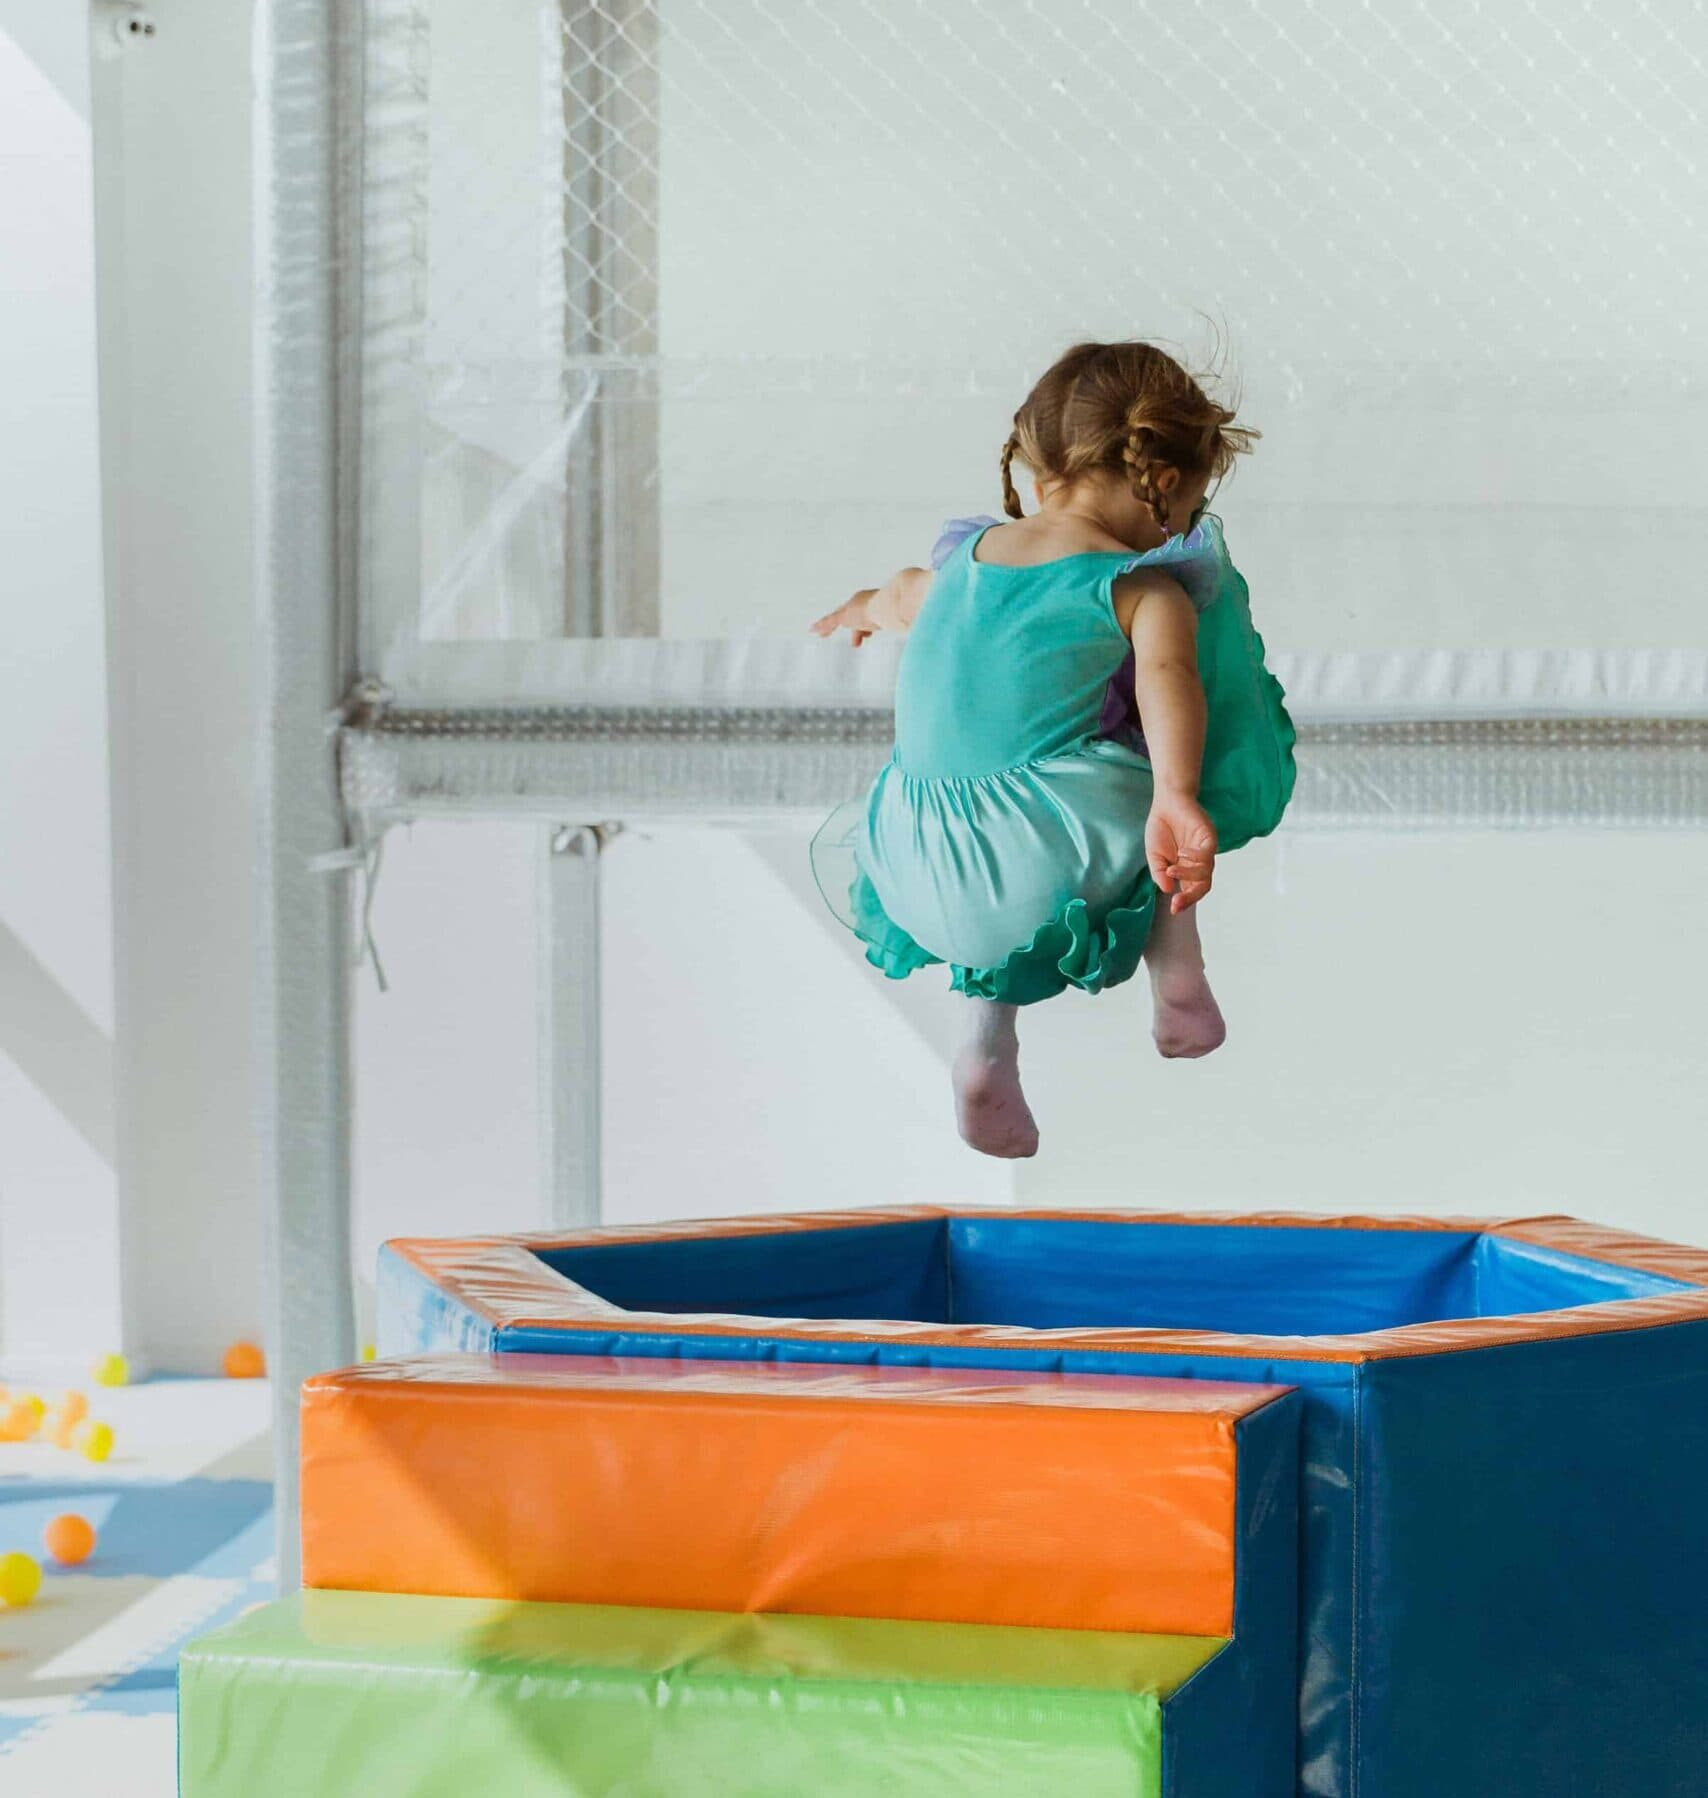 Developing the confident child through soft play